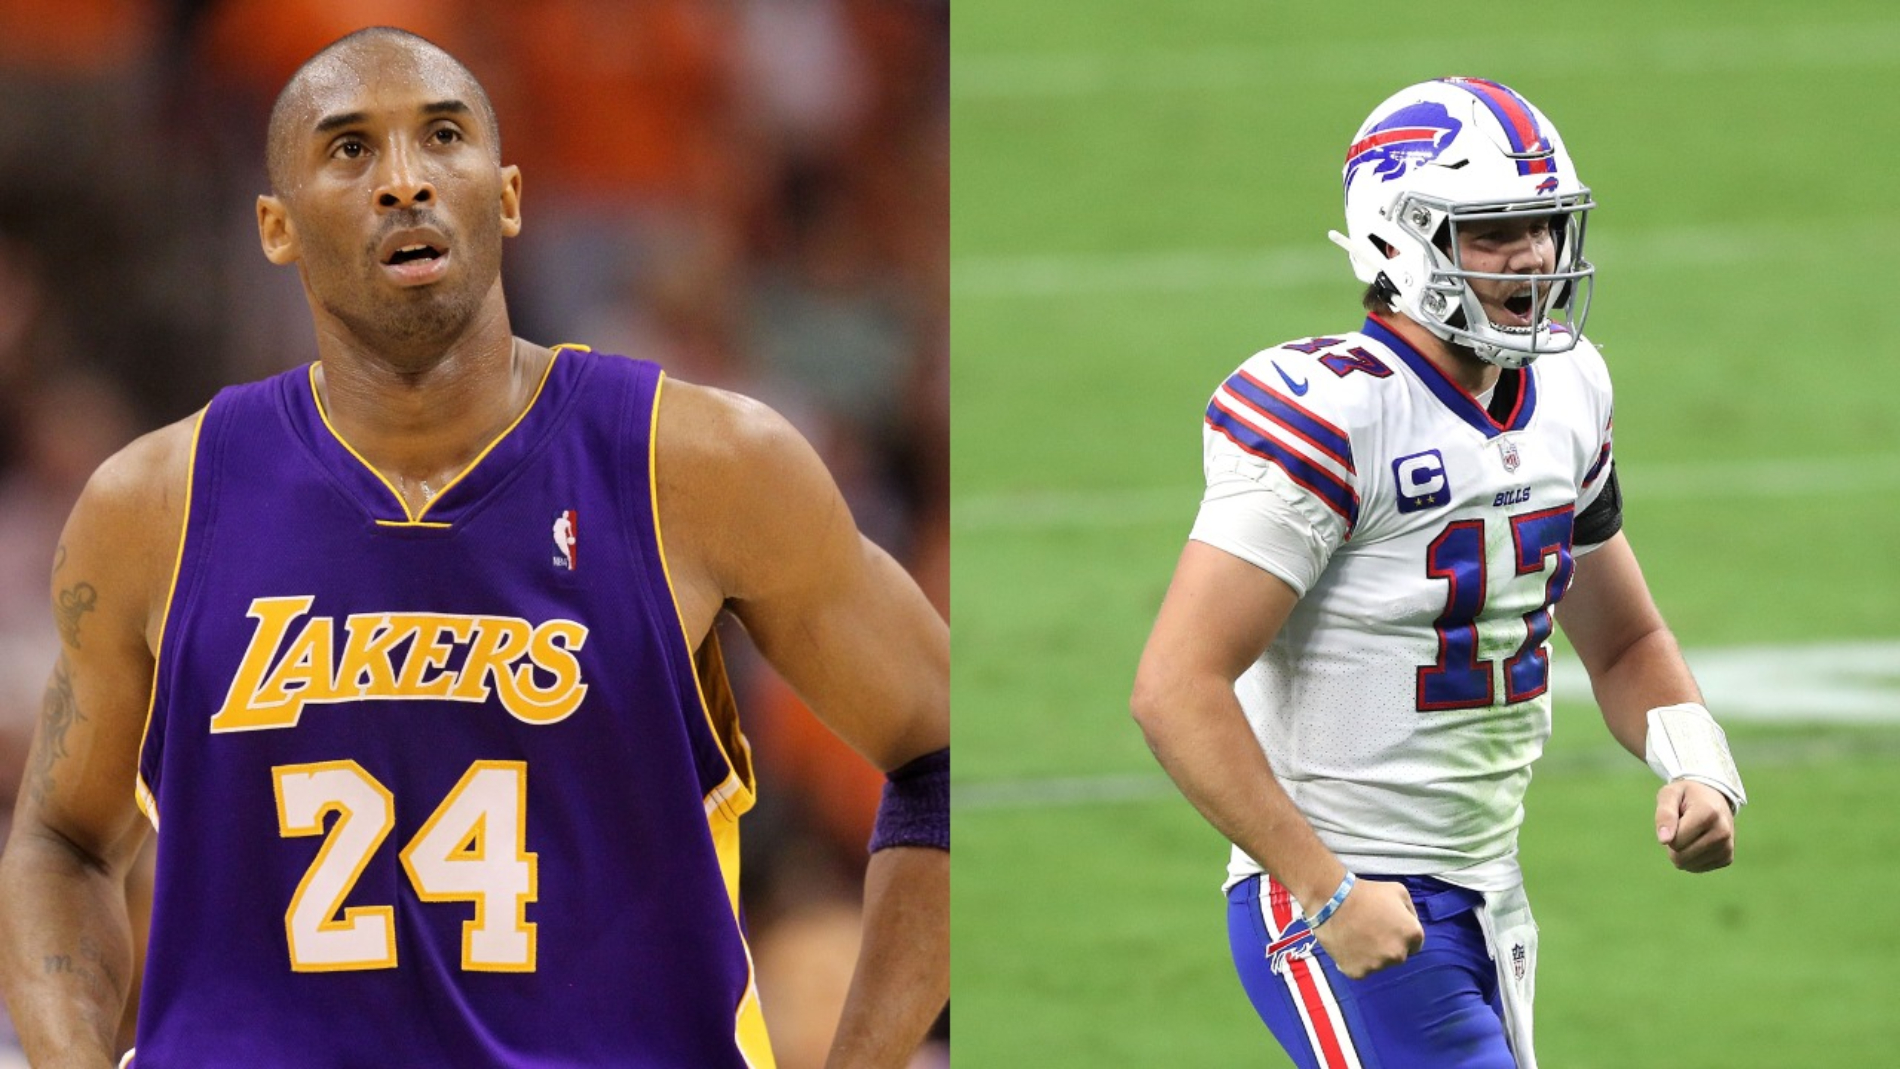 Buffalo Bills QB Josh Allen proved his toughness against the Las Vegas Raiders. Kobe Bryant ultimately helped him do it too.